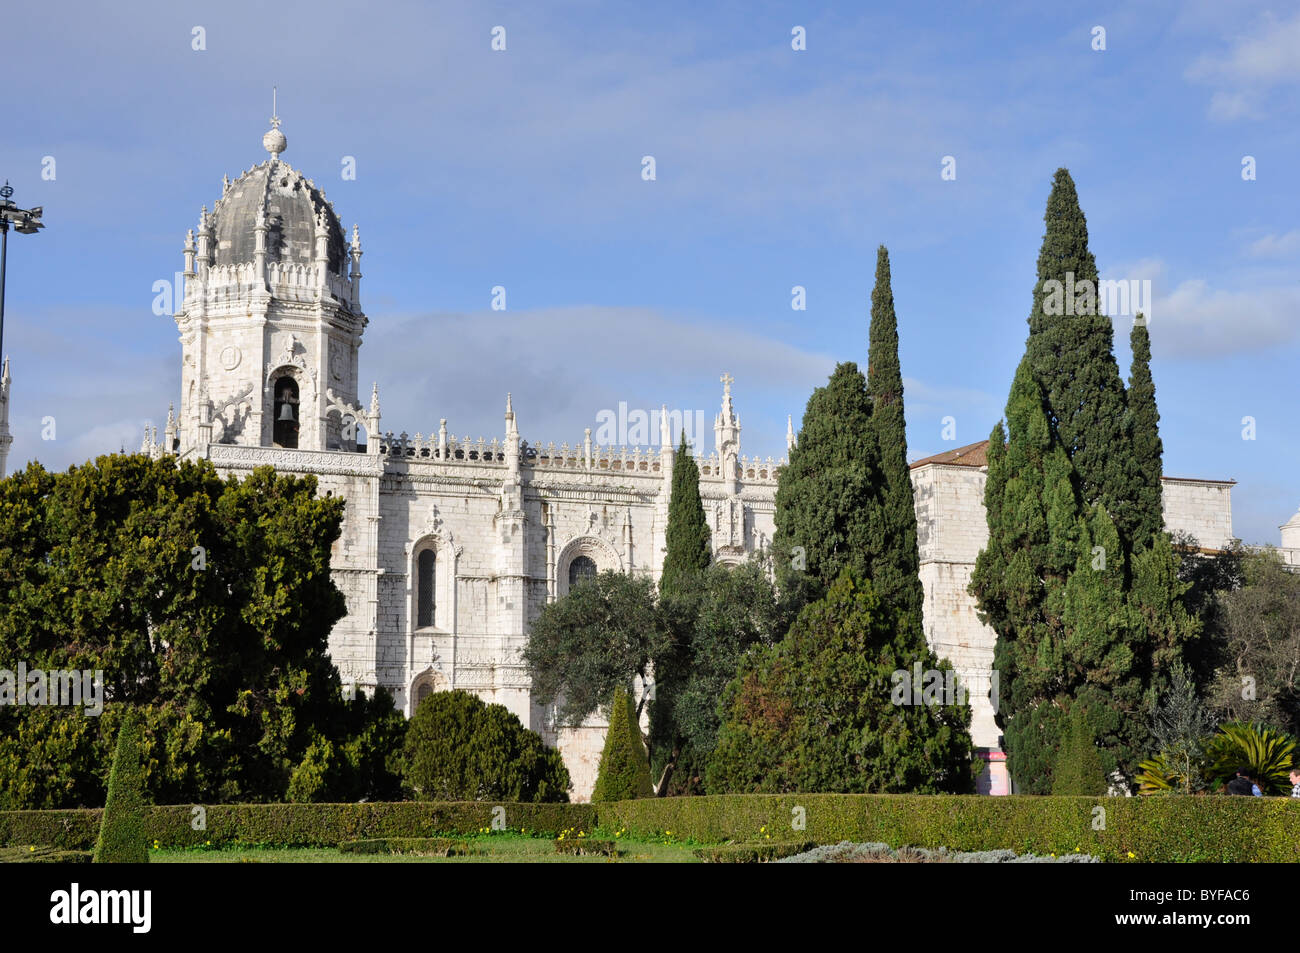 The Monastry , Moistero Dos Jeronimos , Lisbon , Portugal - Stock Image